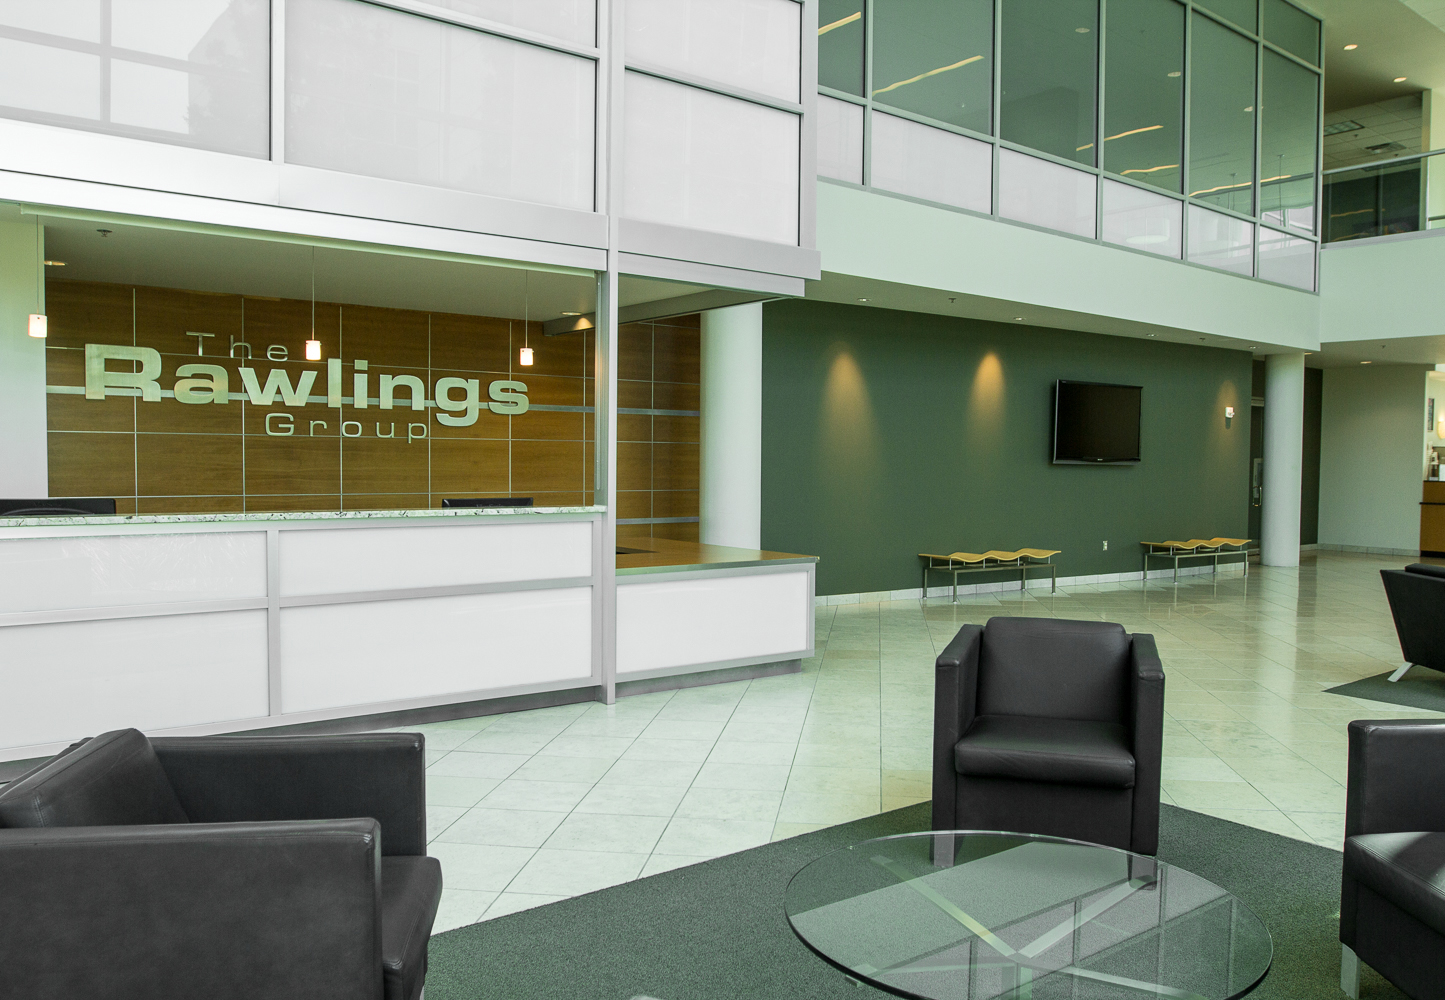 The Rawlings Group Lobby